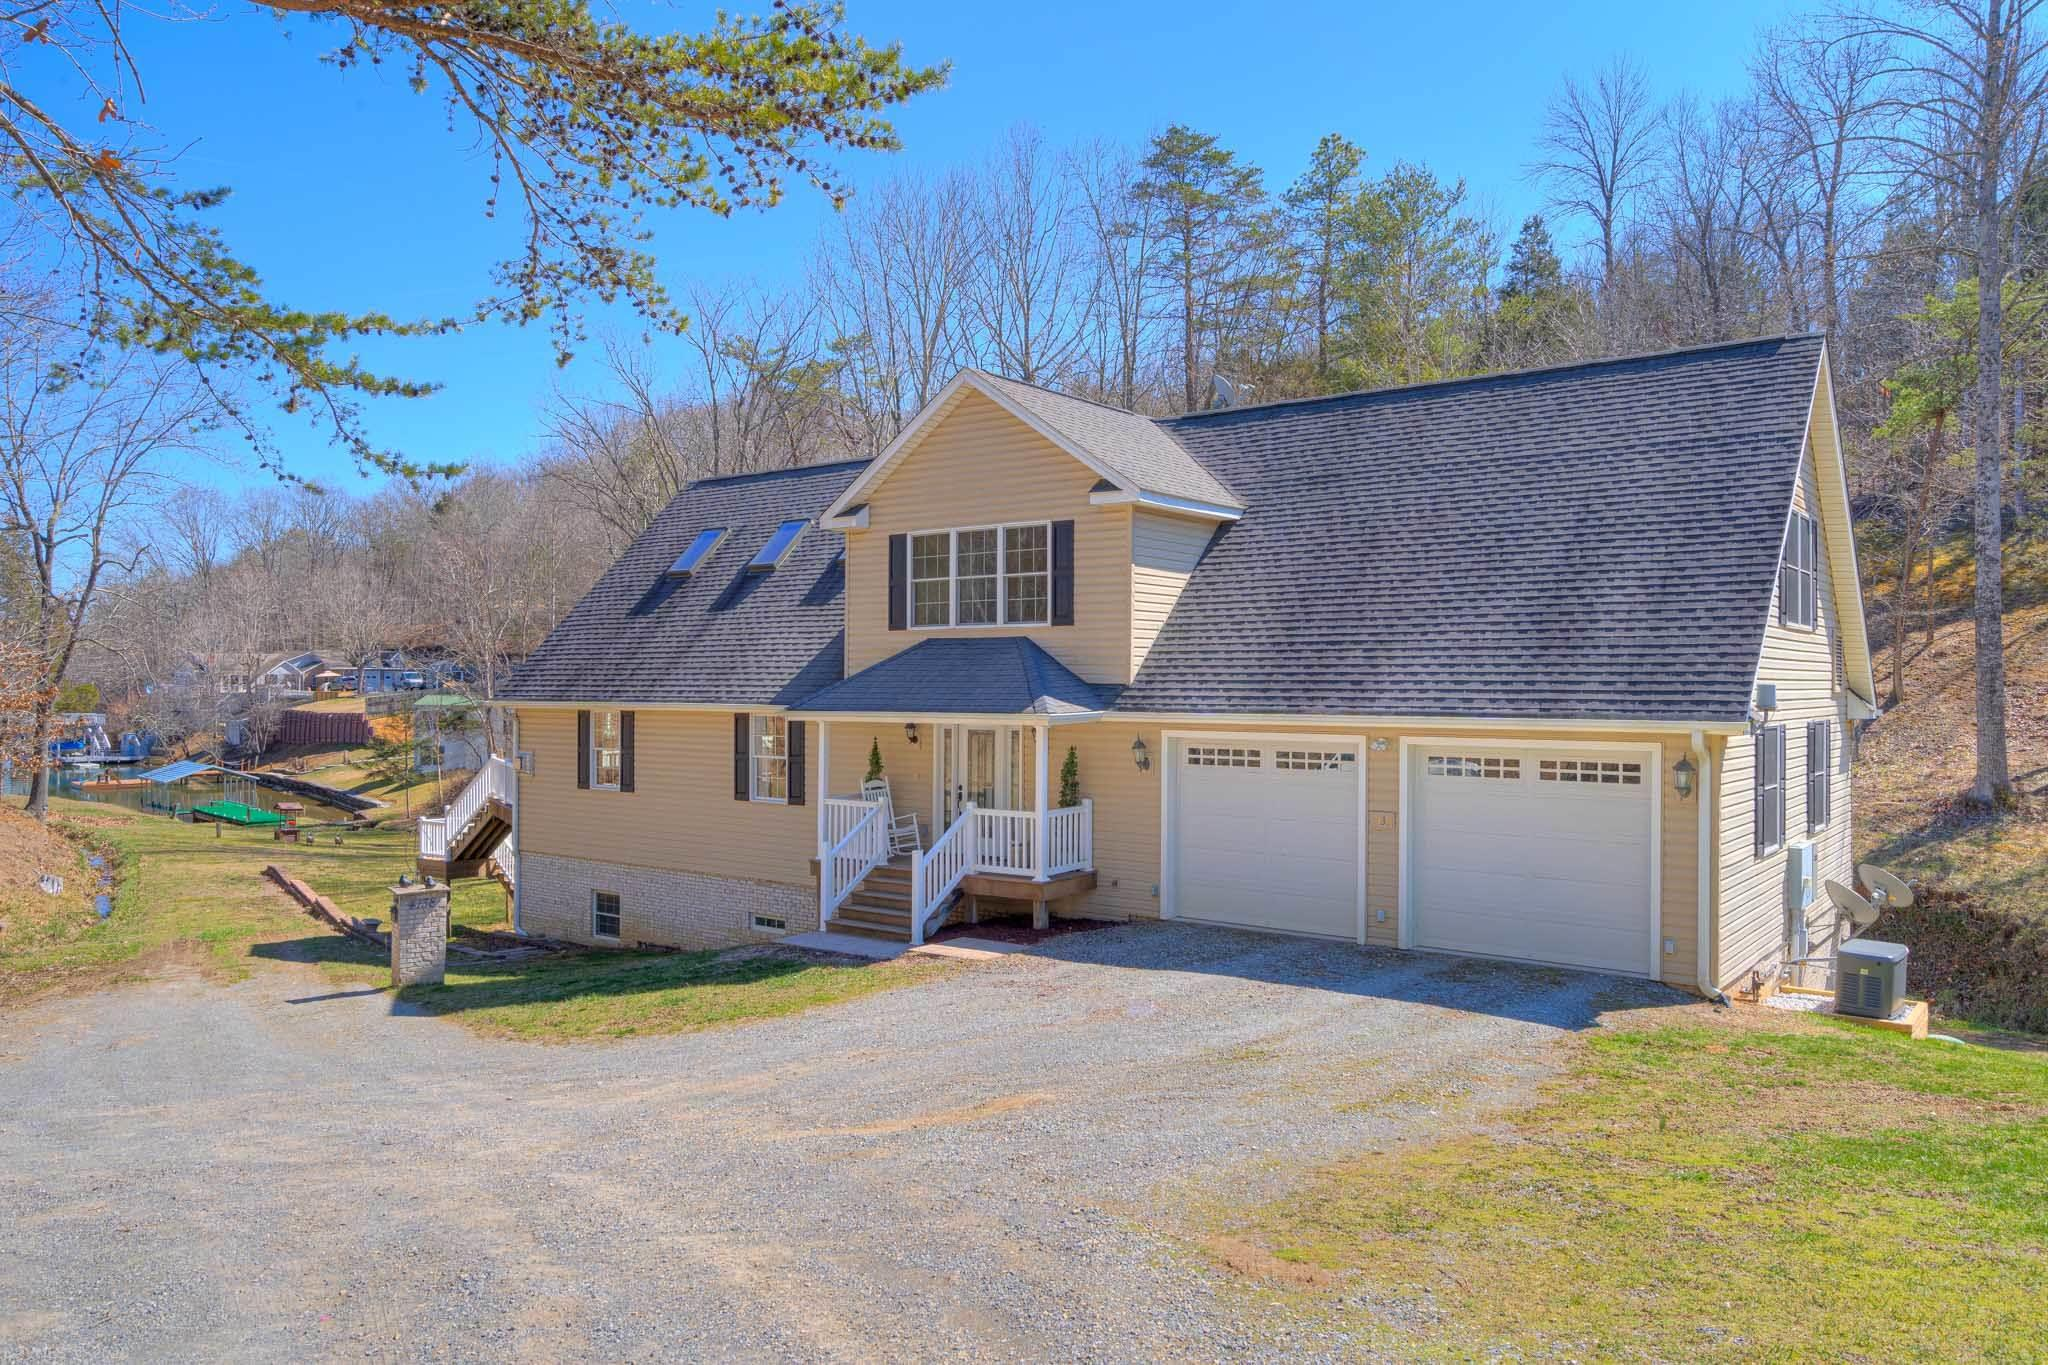 WOW! This Claytor Lake home on a protected inlet is full of upgrades, many for energy efficiency. Lake front, private dock with water and power, beautiful views! Enter into the front great room- vaulted ceilings, remote control ceiling fans, rain-sensing skylights make this room bright and spacious! Amazing heated tile floors throughout. Gourmet kitchen w/gorgeous custom cabinets, beautiful granite countertops, and a large seated island with prep sink. Enjoy lake views during your mornings or evenings on the spacious Trex deck. Laundry and MBdrm on the main; heated floors throughout Master bath, along with custom tile work, jetted tub, lg walk in clset, and shower. Upper level hosts a full guest suite, two closets, lots of windows, a full sitting room, and large full bath. Unfinished basement completely framed, plumbed, and wired for a family room, 2nd MBdrm, walk in closet, and 1/2 bath. Walk right out to the stamped patio, lake view. 8 min. to local shopping/ schools.  A MUST SEE!